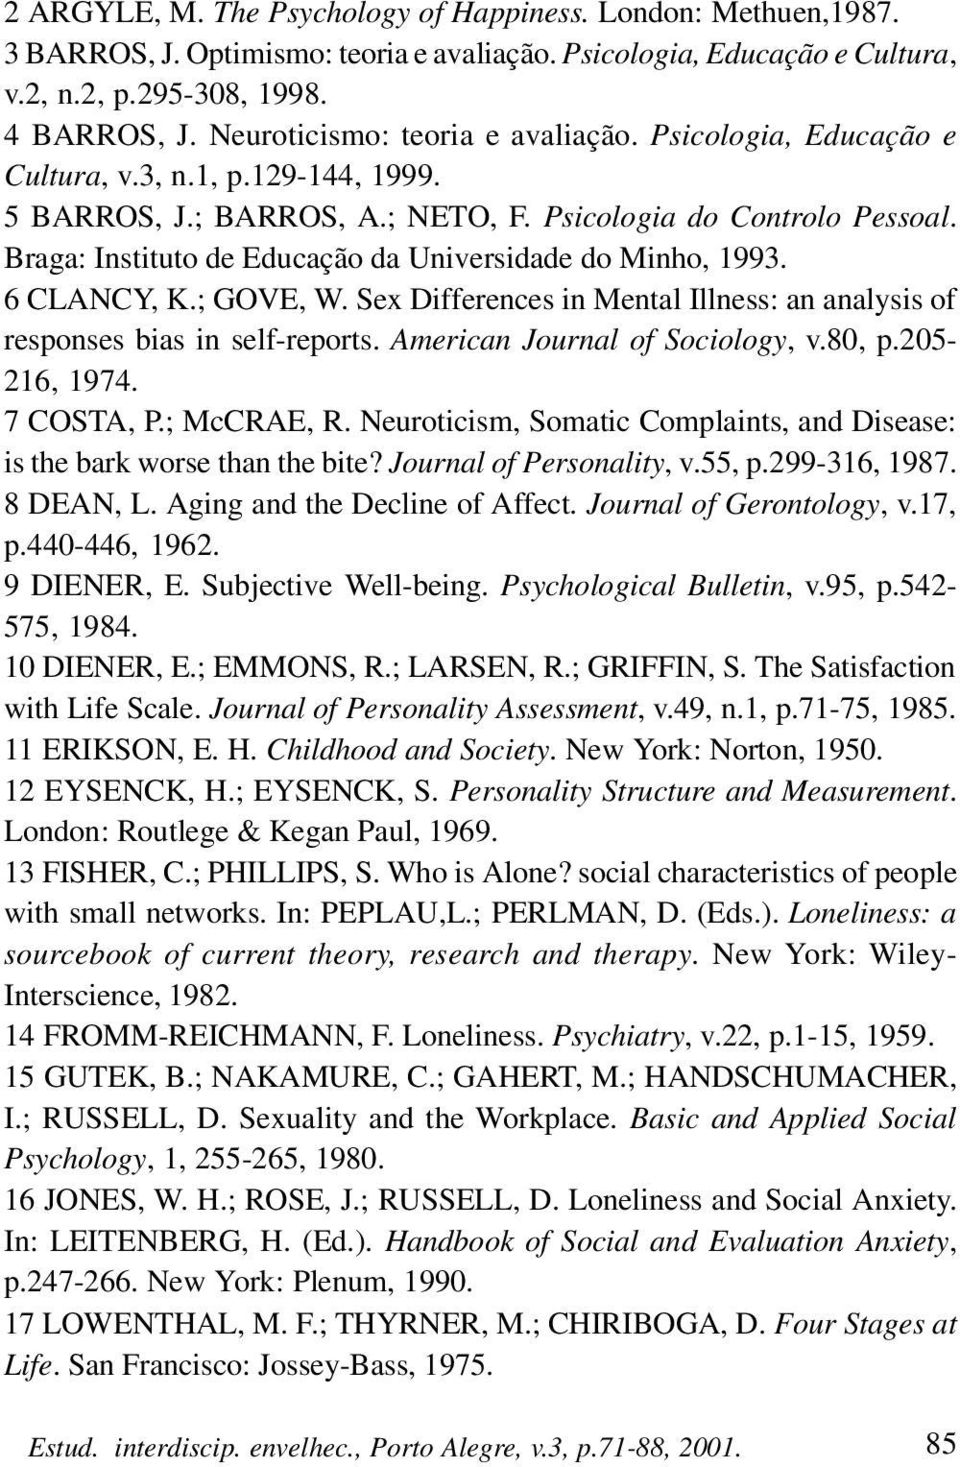 Braga: Instituto de Educação da Universidade do Minho, 1993. 6 CLANCY, K.; GOVE, W. Sex Differences in Mental Illness: an analysis of responses bias in self-reports. American Journal of Sociology, v.